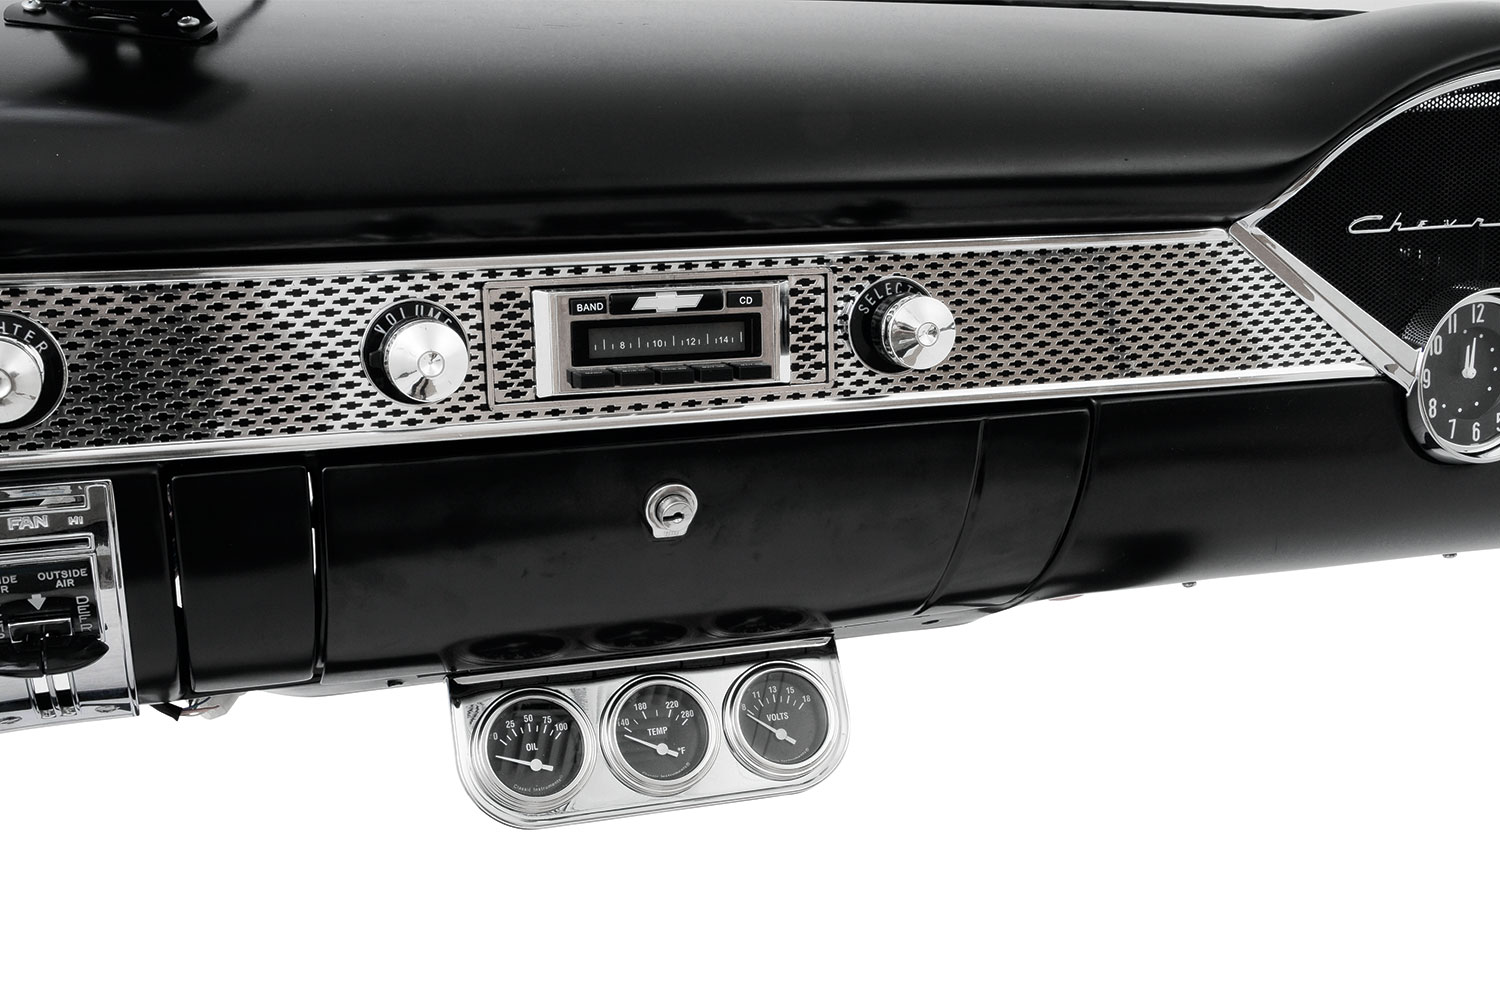 And here's the center of the dash all completed. From the brand-new glovebox to cool Custom Autosound radio and Classic Instruments gauges, this looks like the perfect period-correct '55 dashboard.